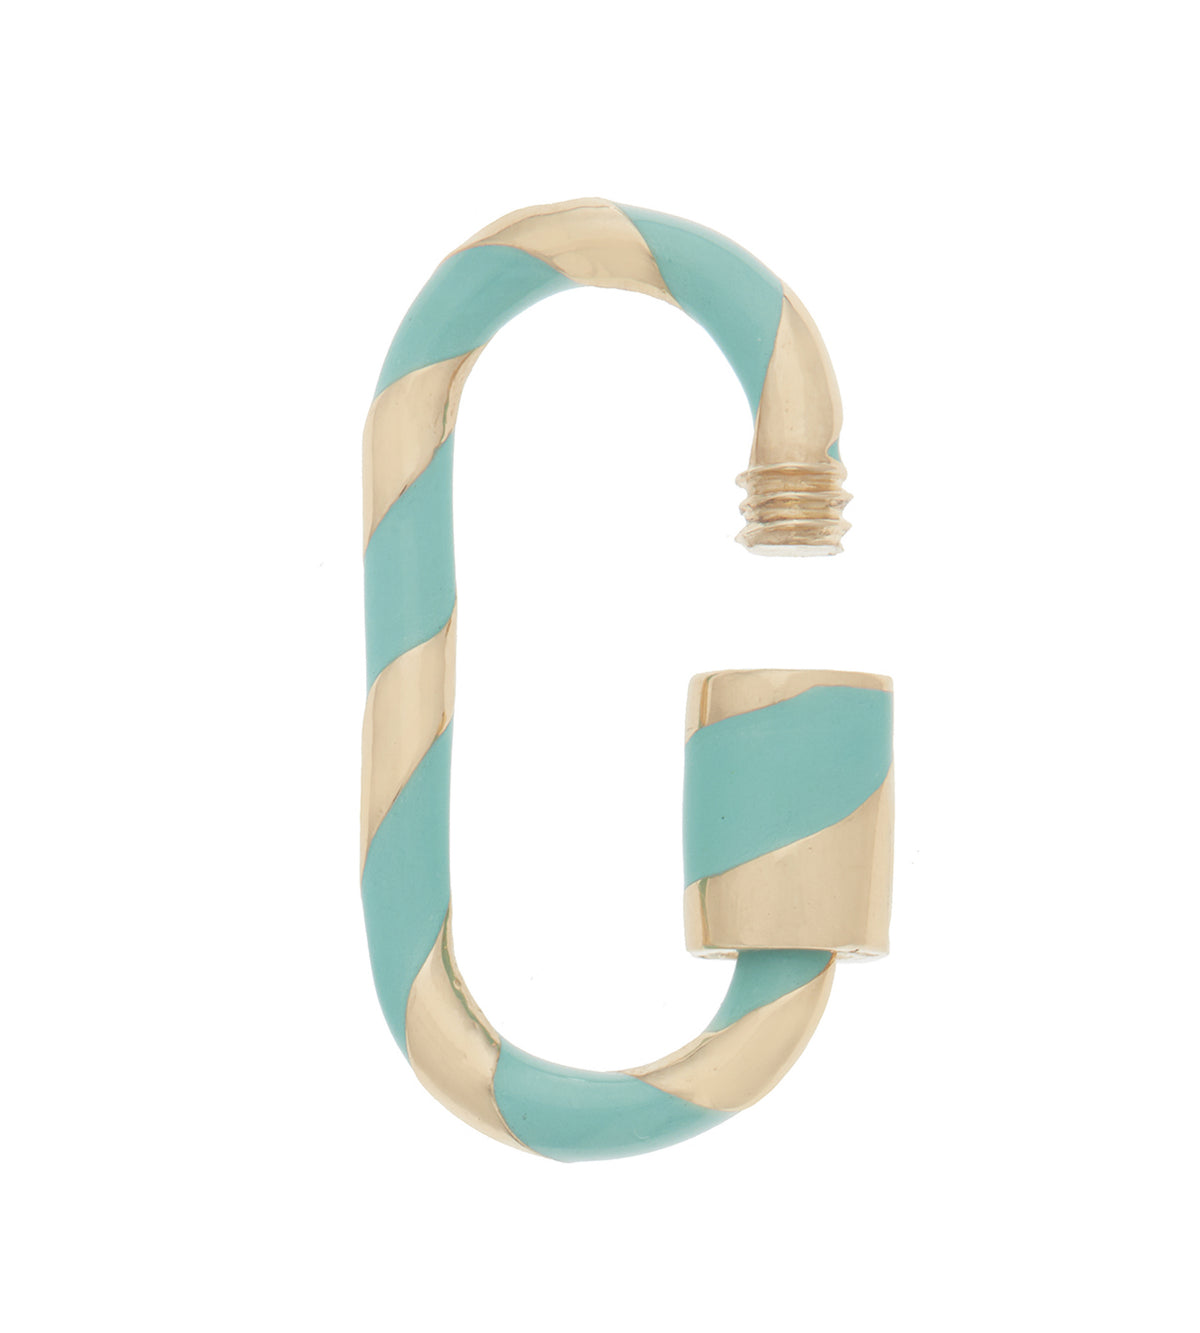 Medium Lock with Turquoise Enamel